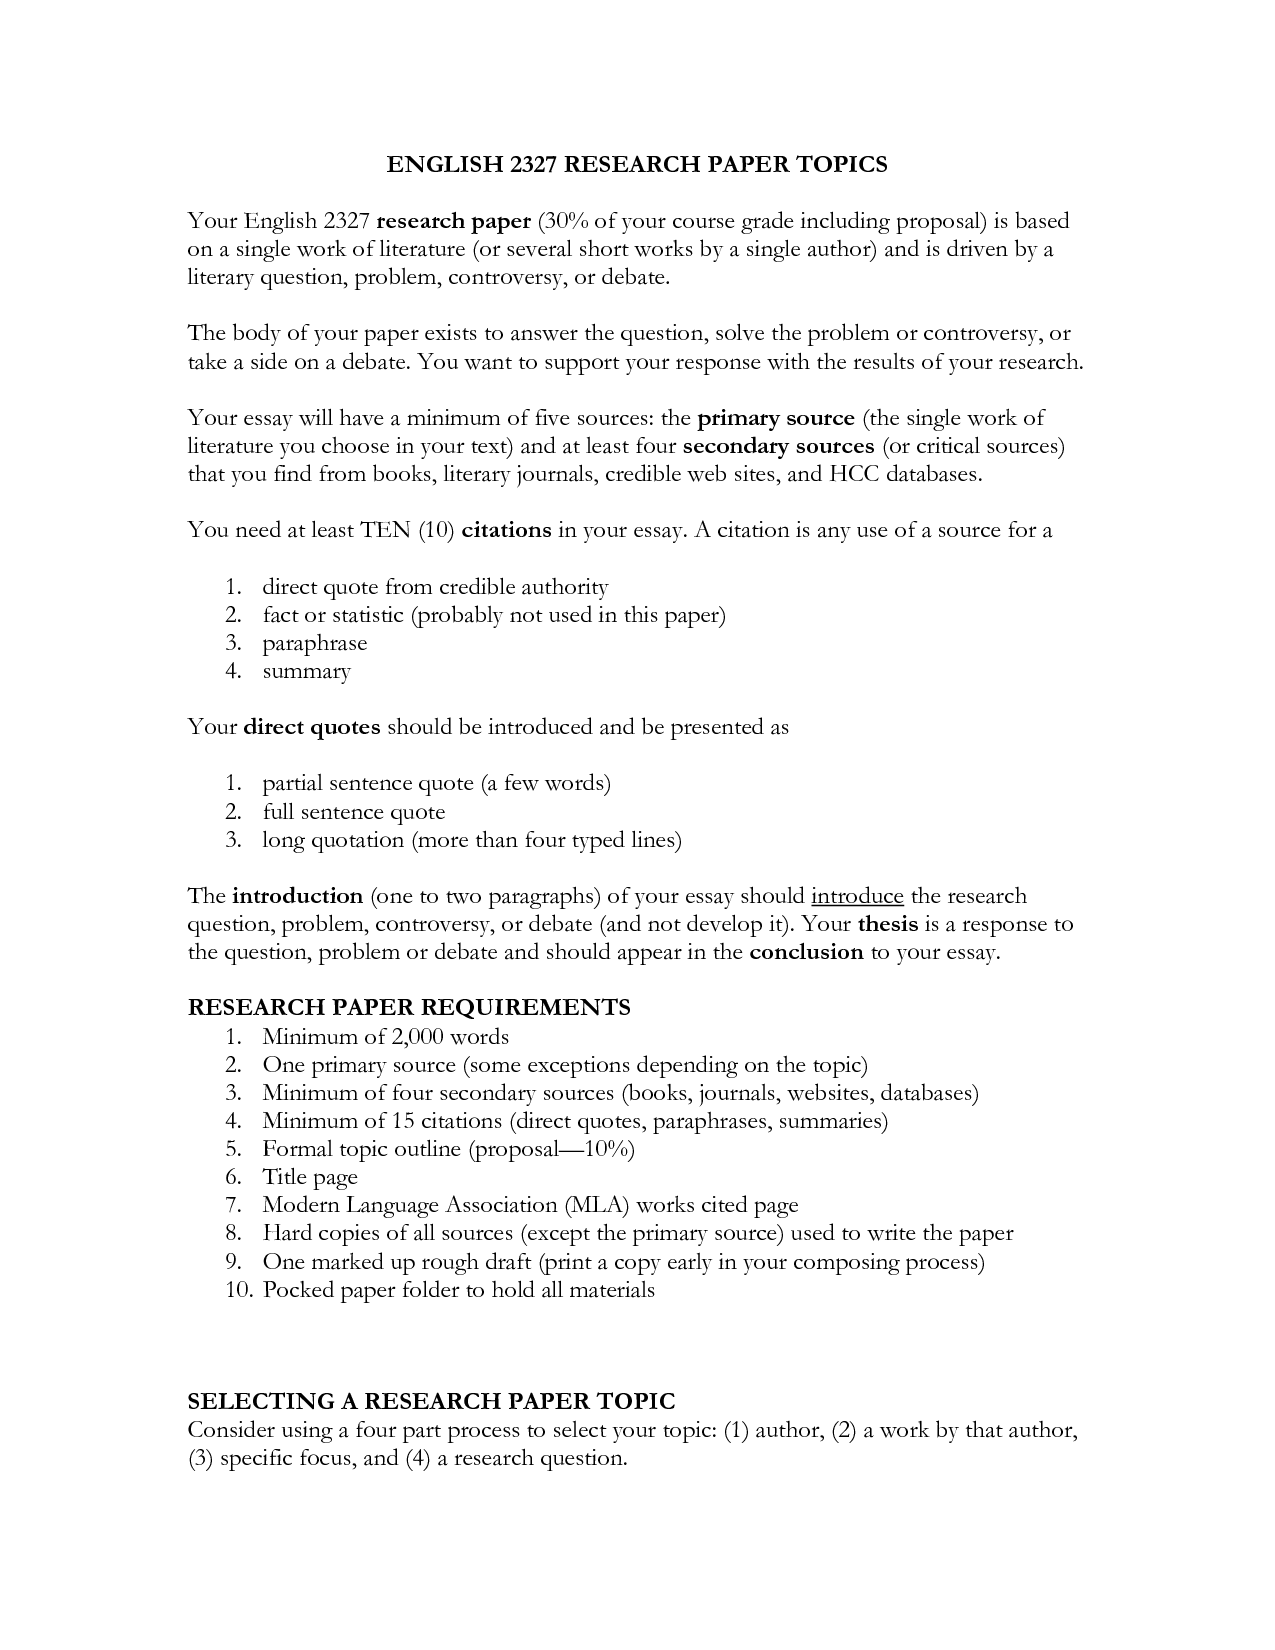 research essay questions research proposal essay topics